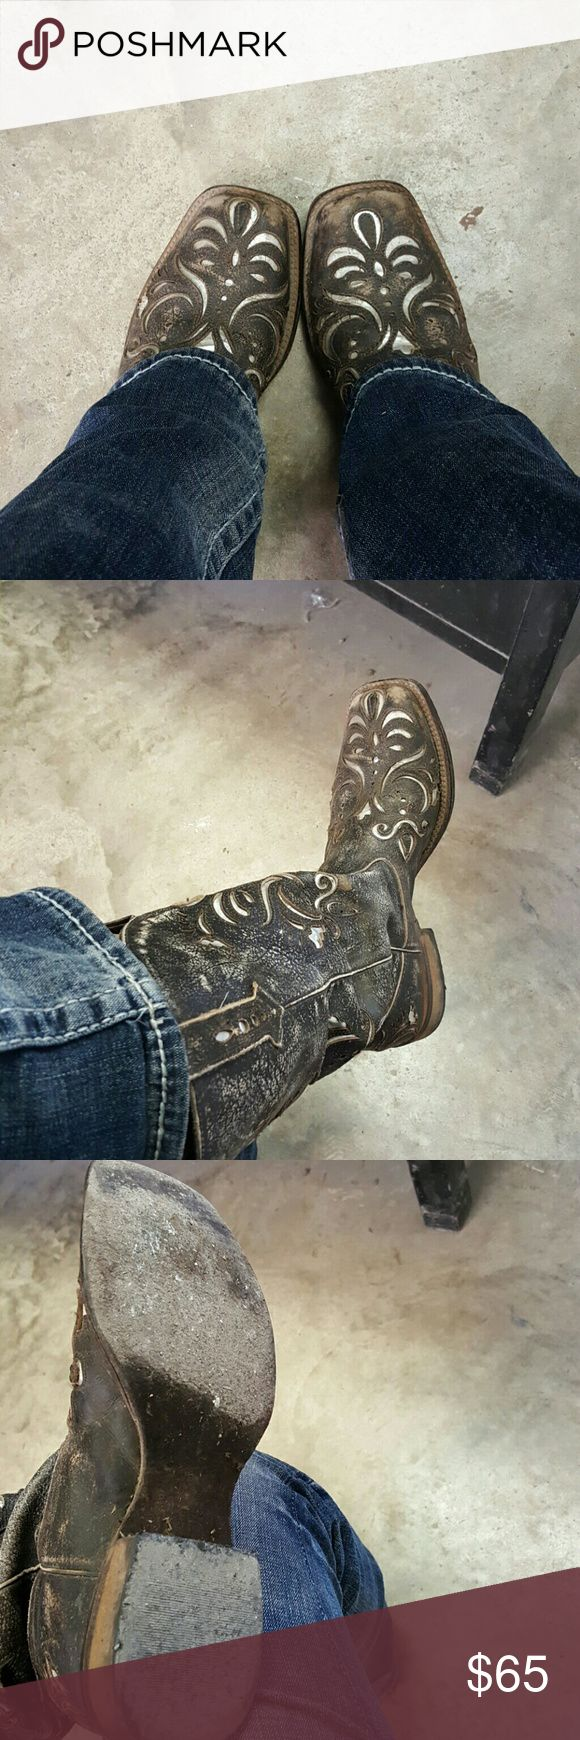 Super cute custom roper boots Good condition loved but needs a new home Shoes Heeled Boots